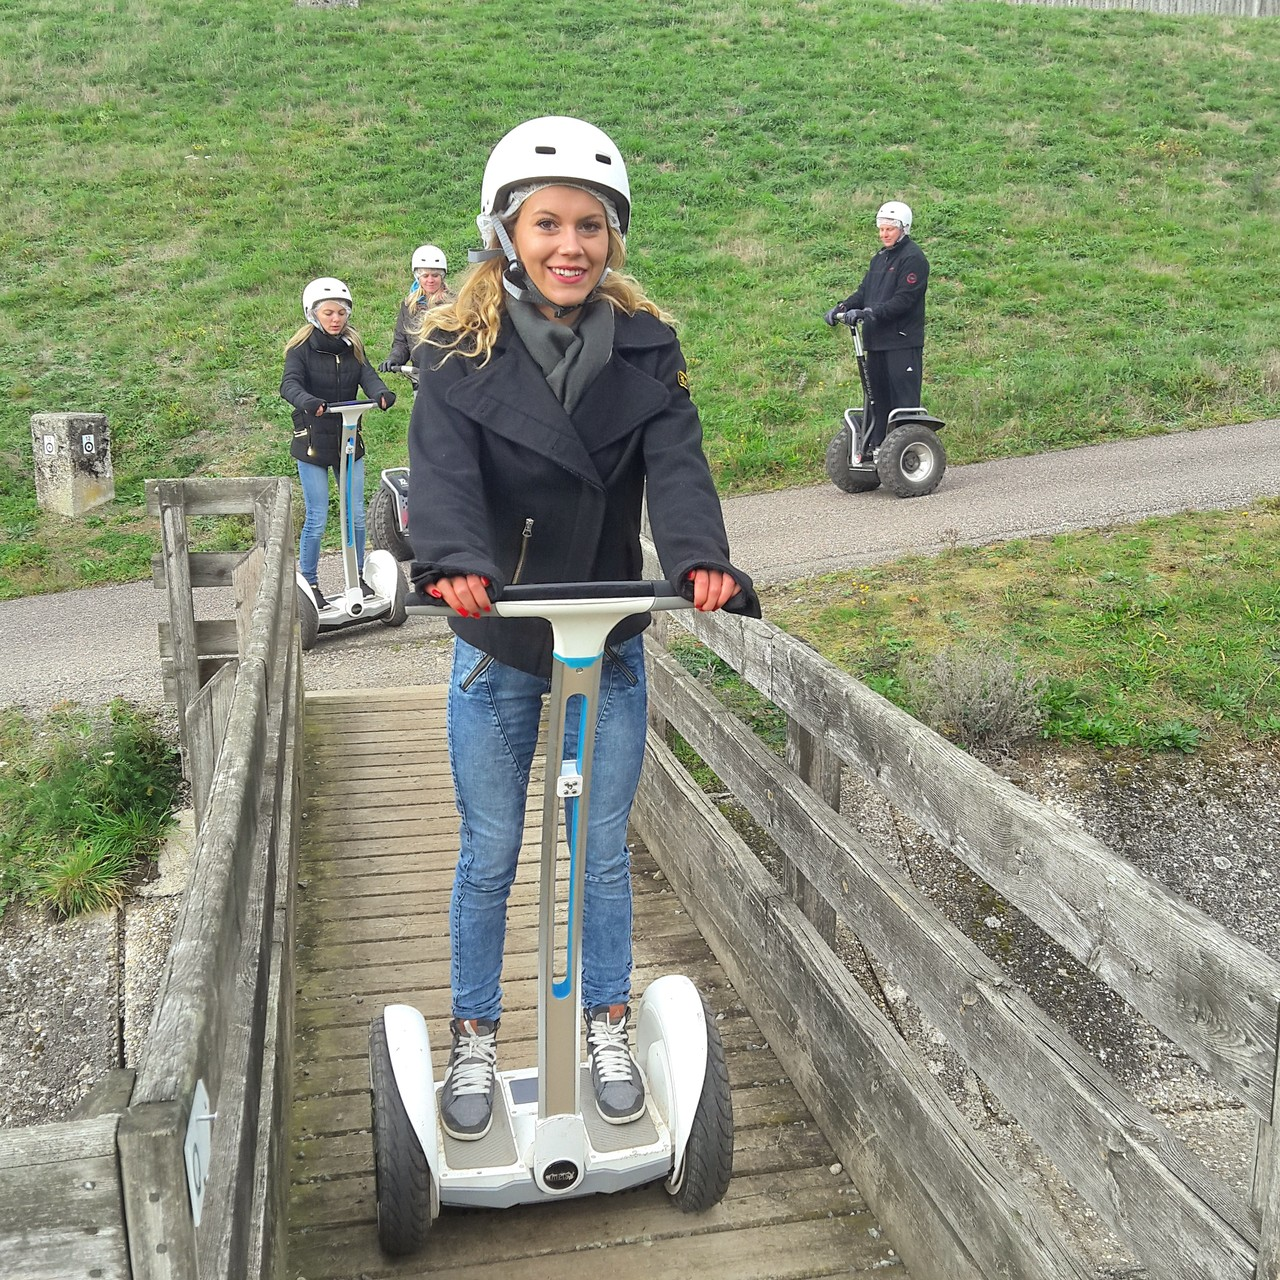 FUN MOVING GYROPODE SEGWAY EN ALSACE - barrage de Michelbach